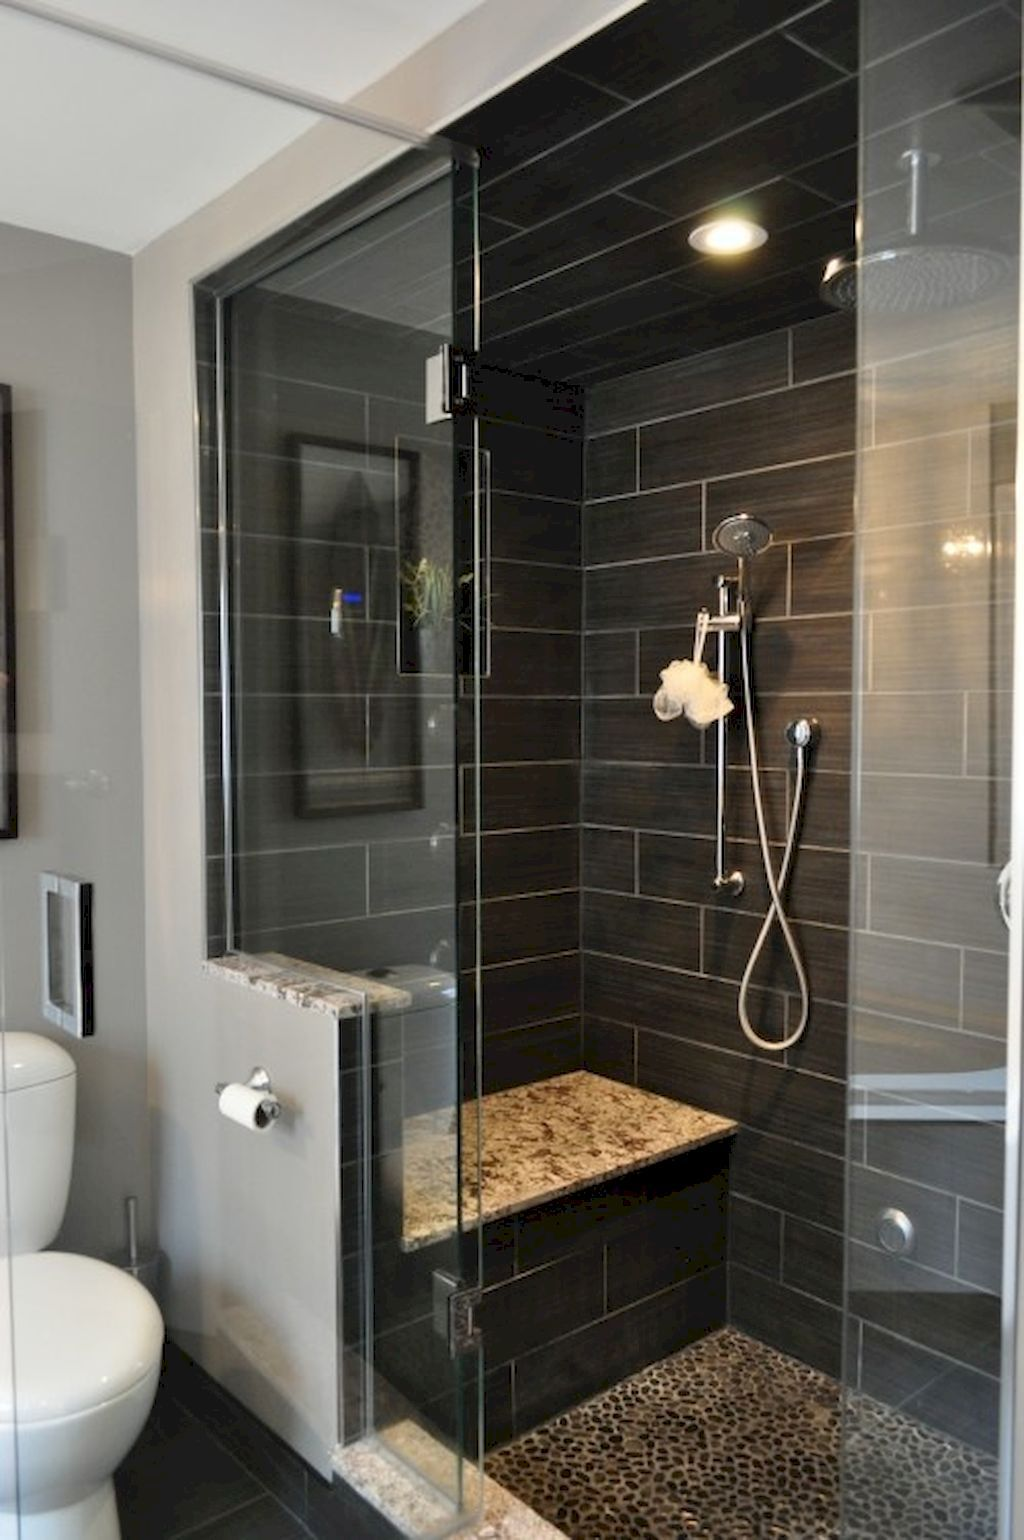 Best Small Bathroom Remodel Ideas On A Budget Small Bathroom - Bathroom shower ideas on a budget